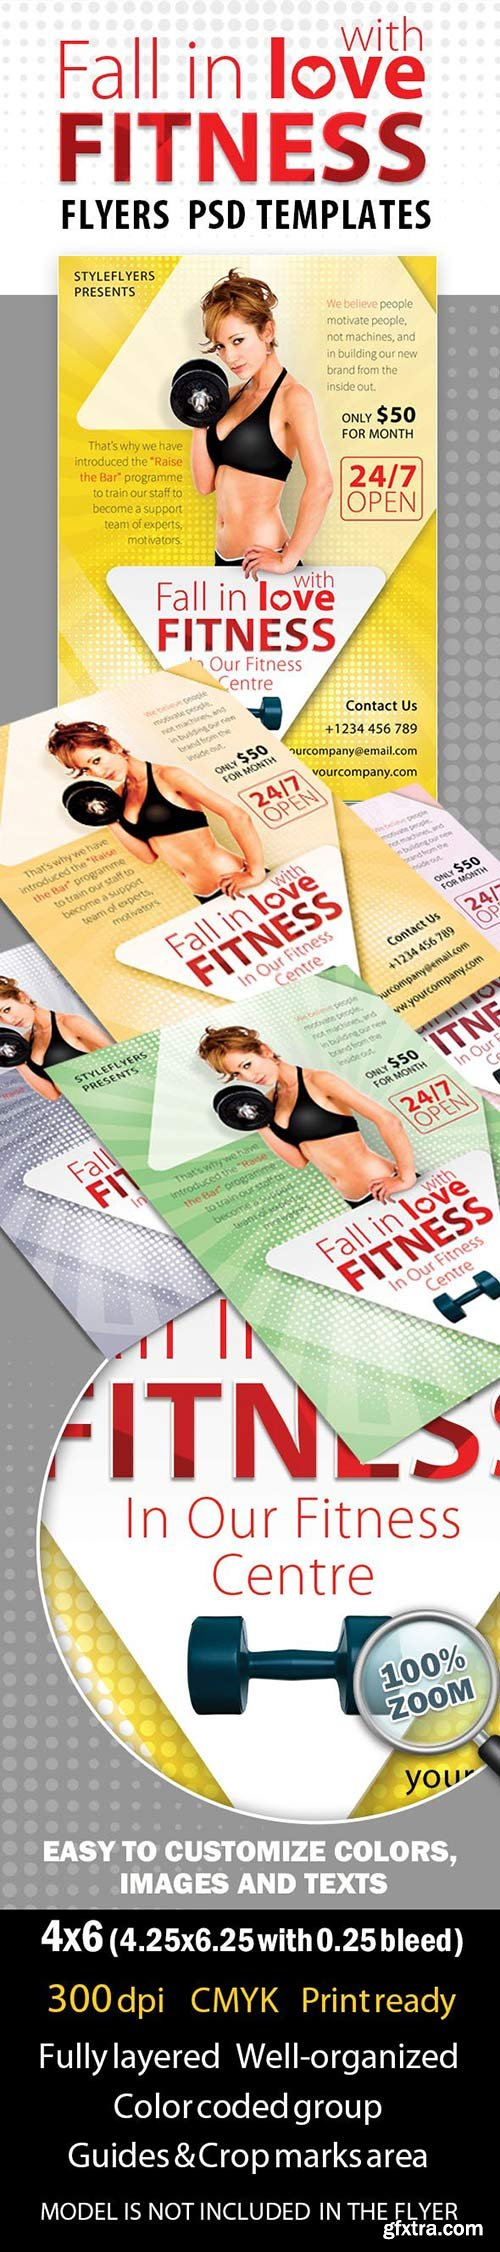 Fitness Love Flyer PSD Template + Facebook Cover